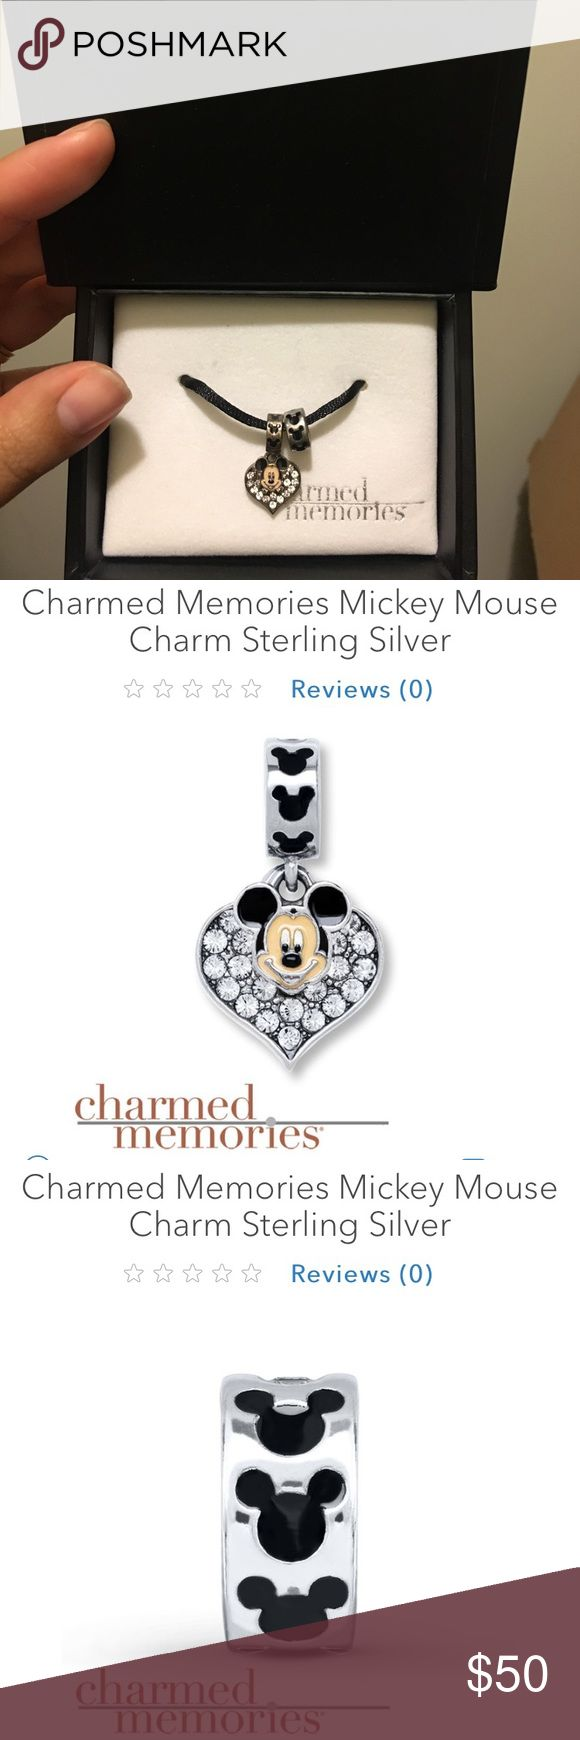 Disney Charmed Memories charms Set of two adorable Mickey Mouse charms from the Charmed Memories collection from Kay Jewelers. Brand new and never worn! Kay Jewelers Jewelry Bracelets